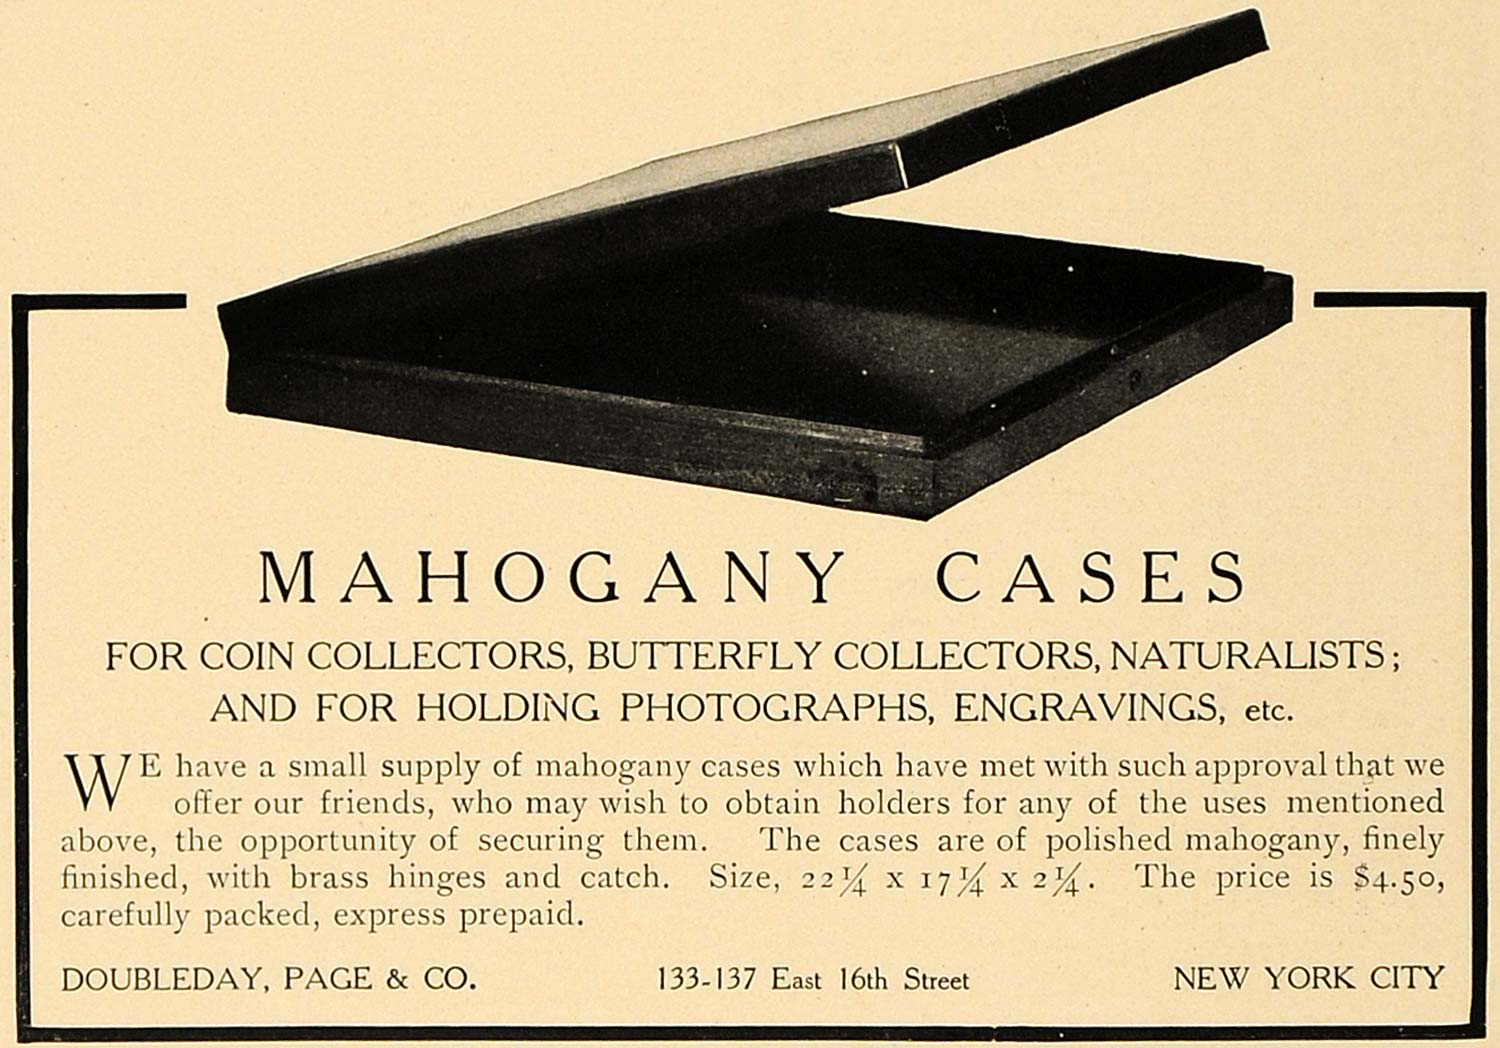 1906 Ad Doubleday Page Mahogany Cases Collectors NY - ORIGINAL ADVERTISING CL4